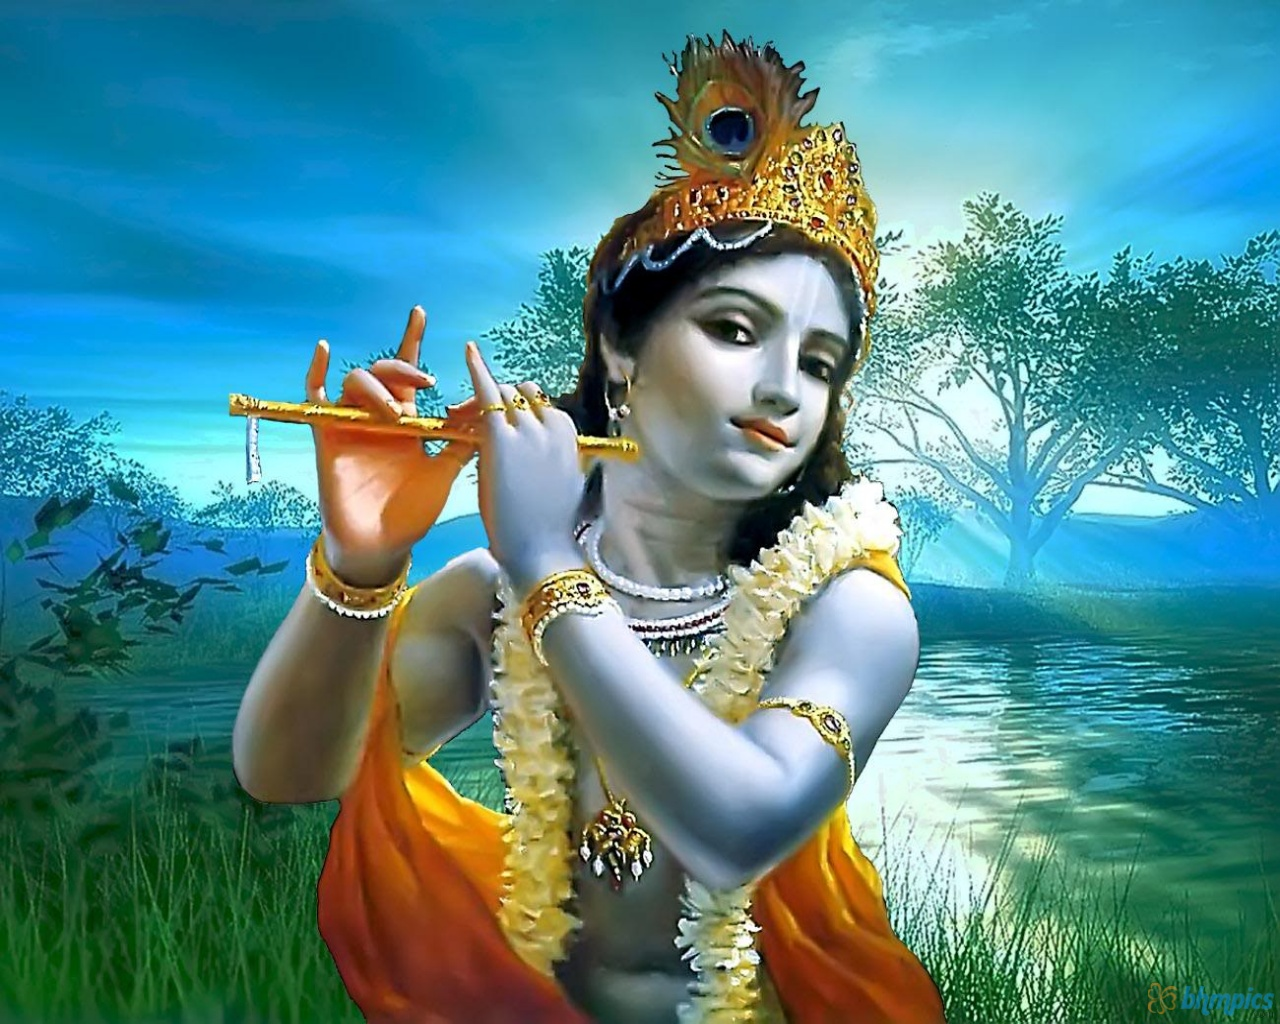 Download this gallery to your personal computer or the web-media device. Do not forget to view different Krishna images galleries.